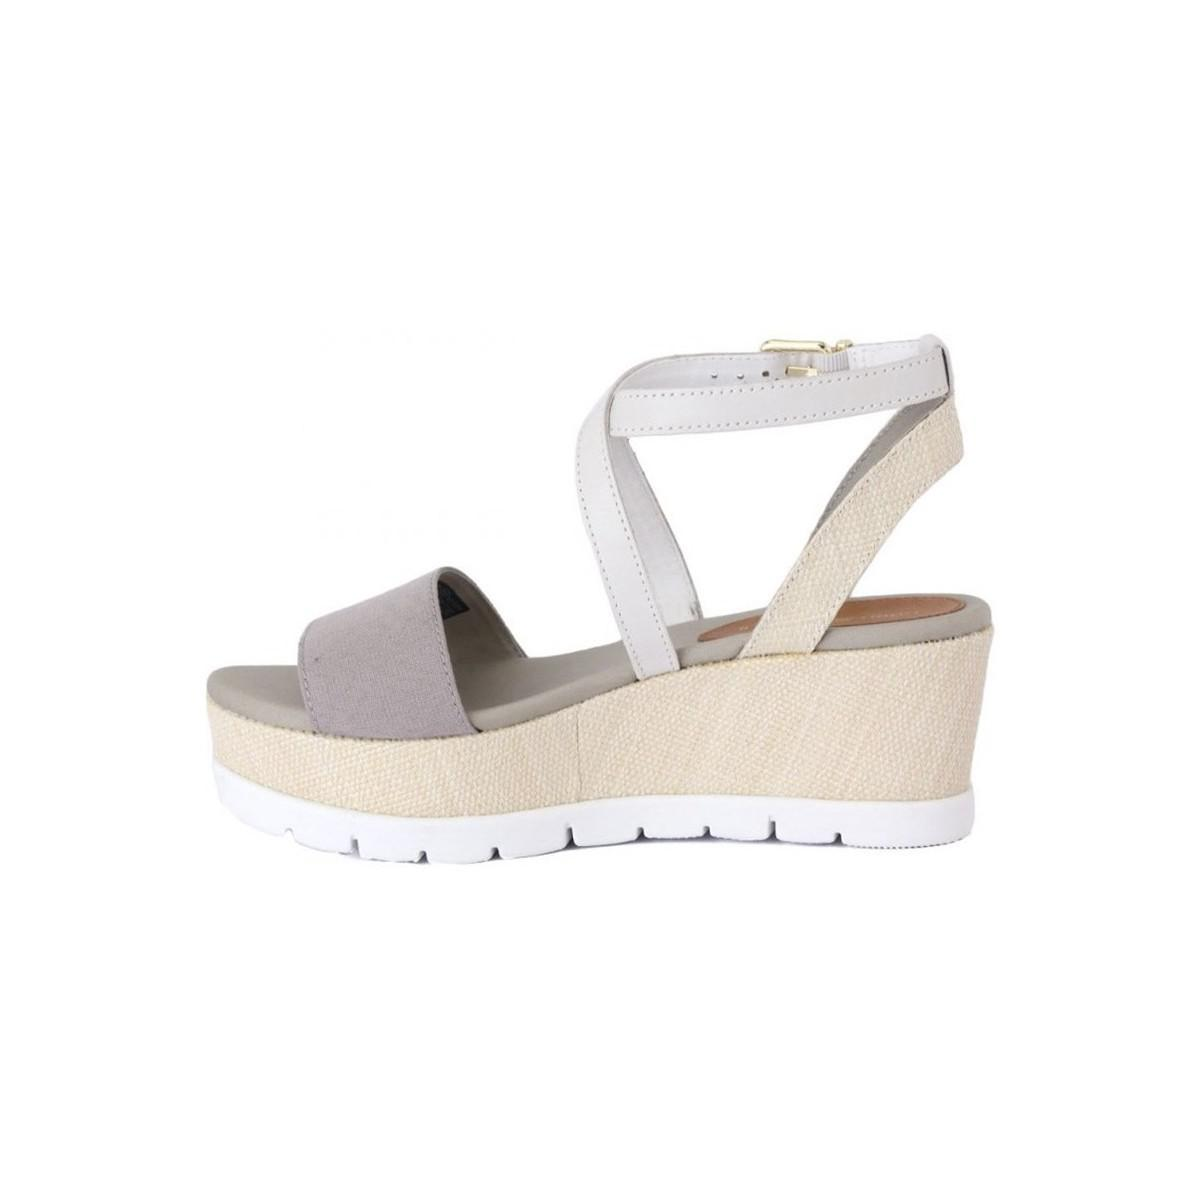 974e043fc5a7 Tommy Hilfiger Venice Silver Women s Sandals In White in White - Lyst